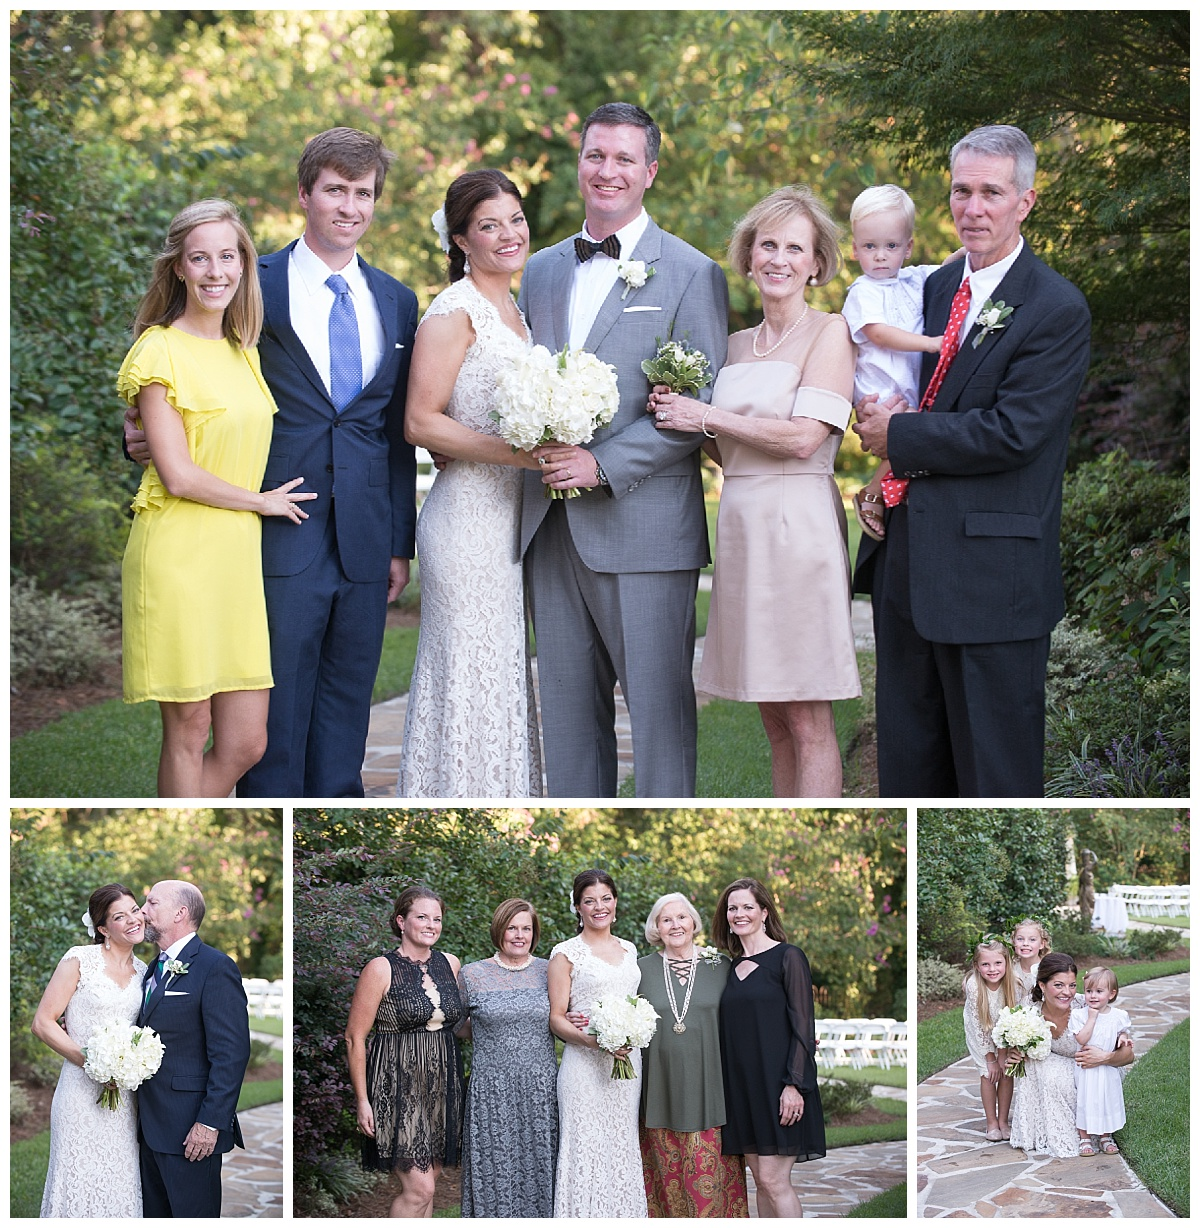 Family portraits at wedding at Senates End